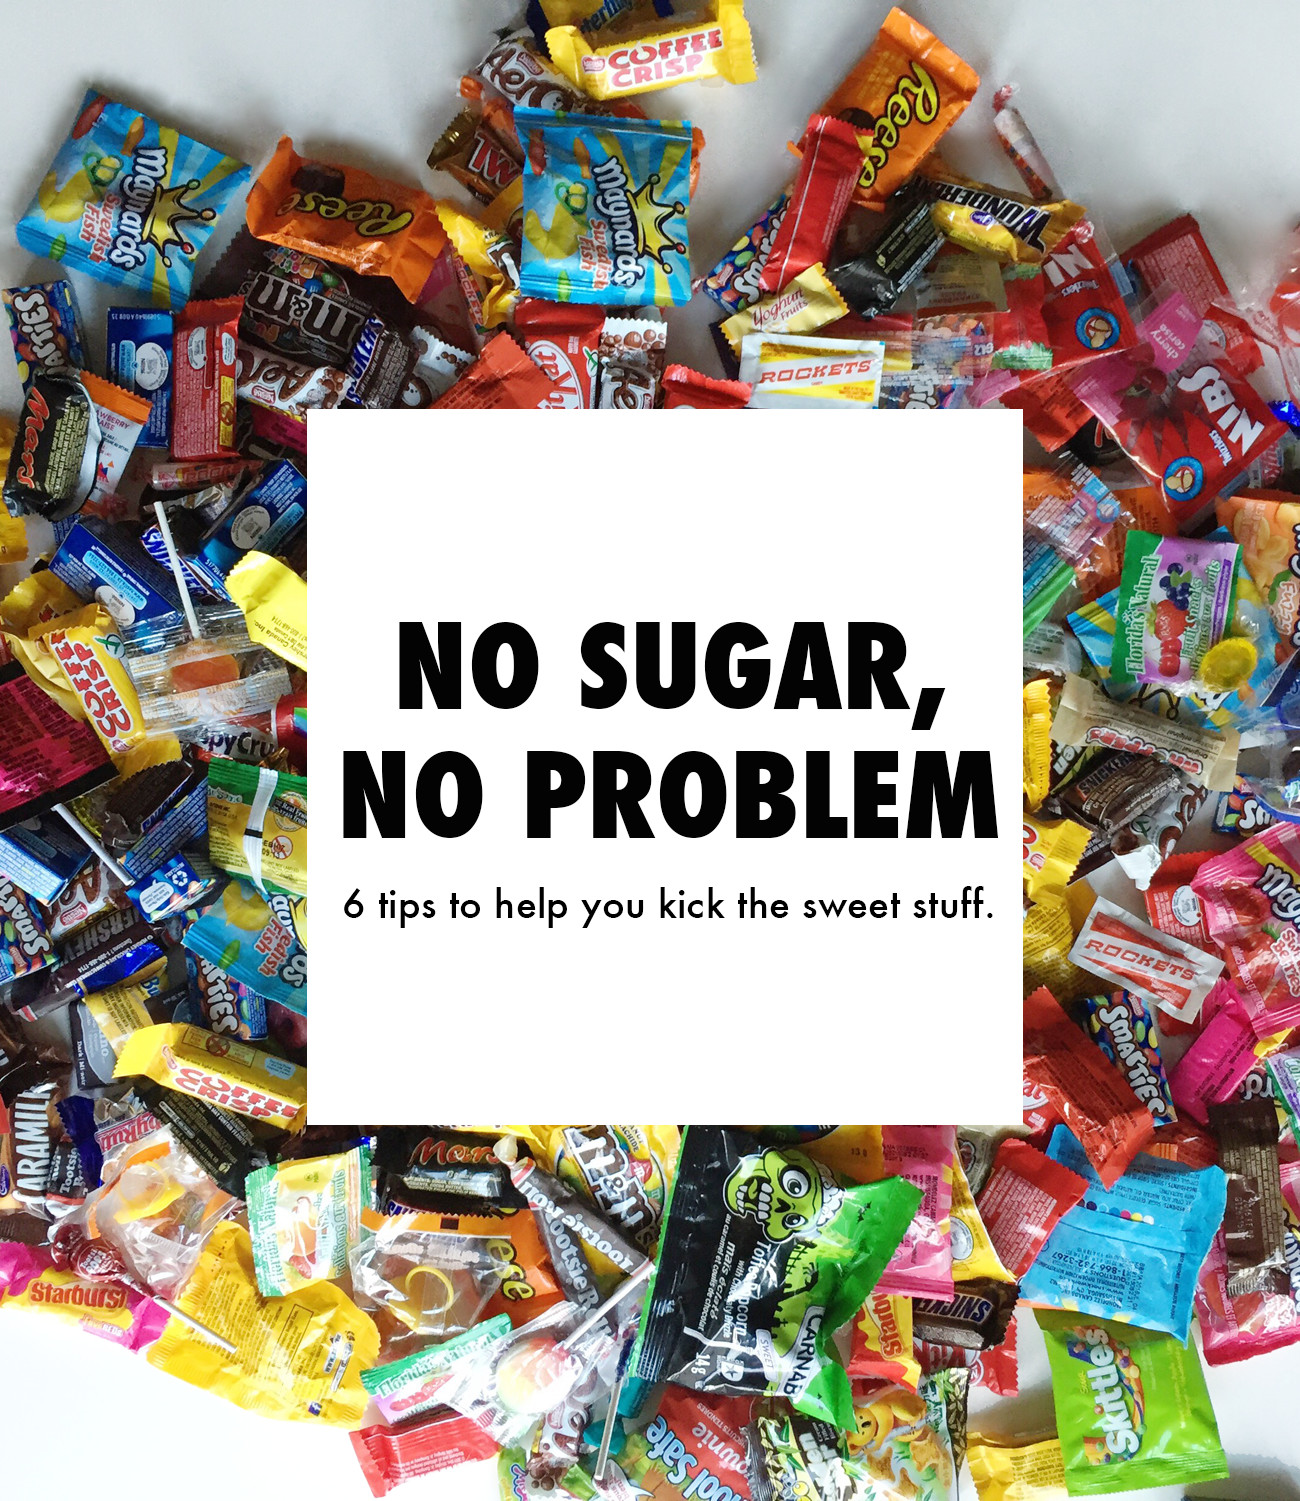 6 tips to help you kick a sugar habit